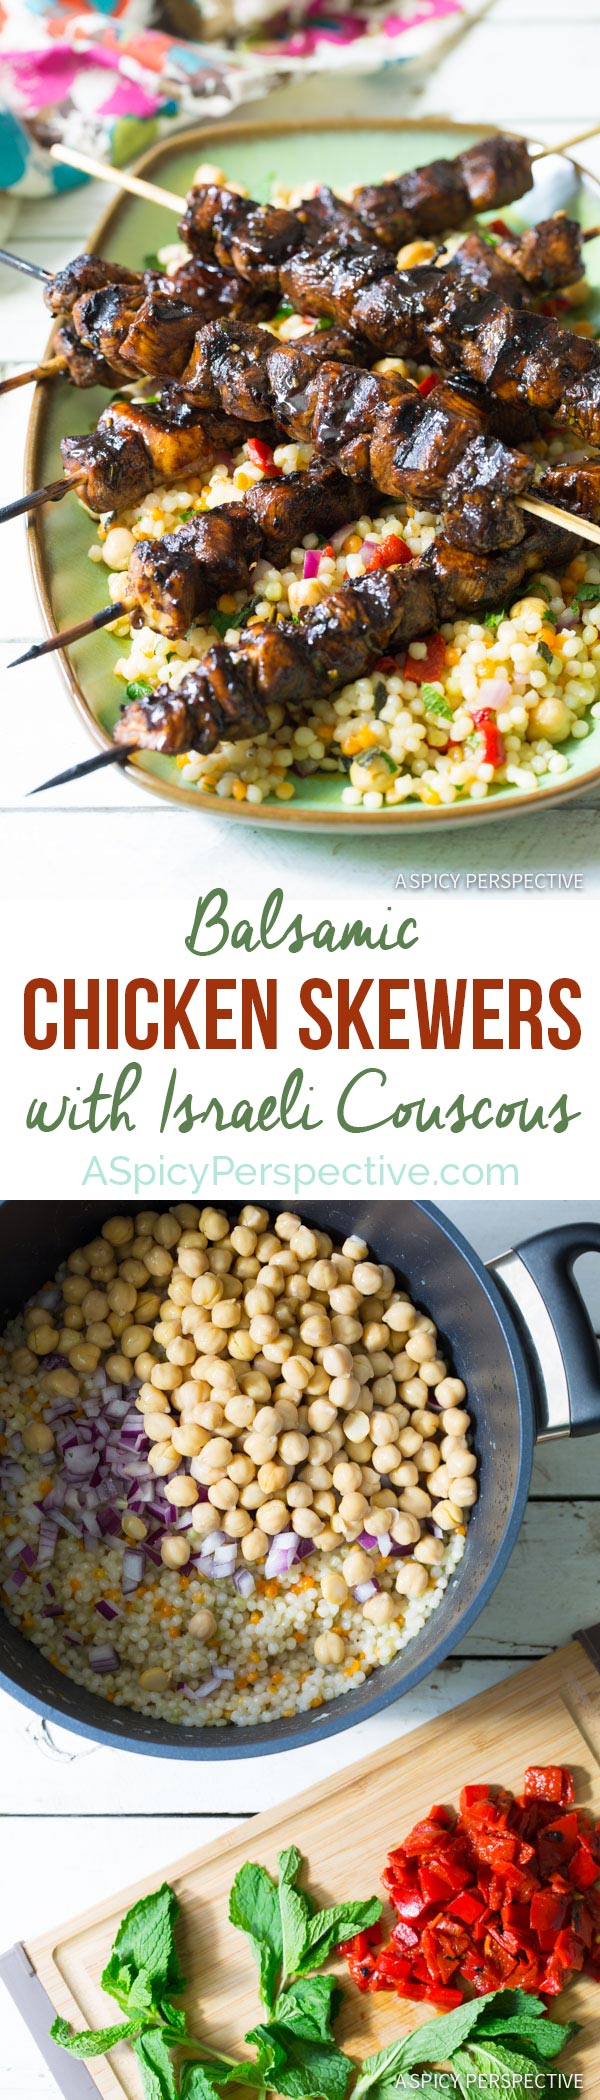 Easy Grilled Balsamic Chicken Skewers with Israeli Couscous just in ...